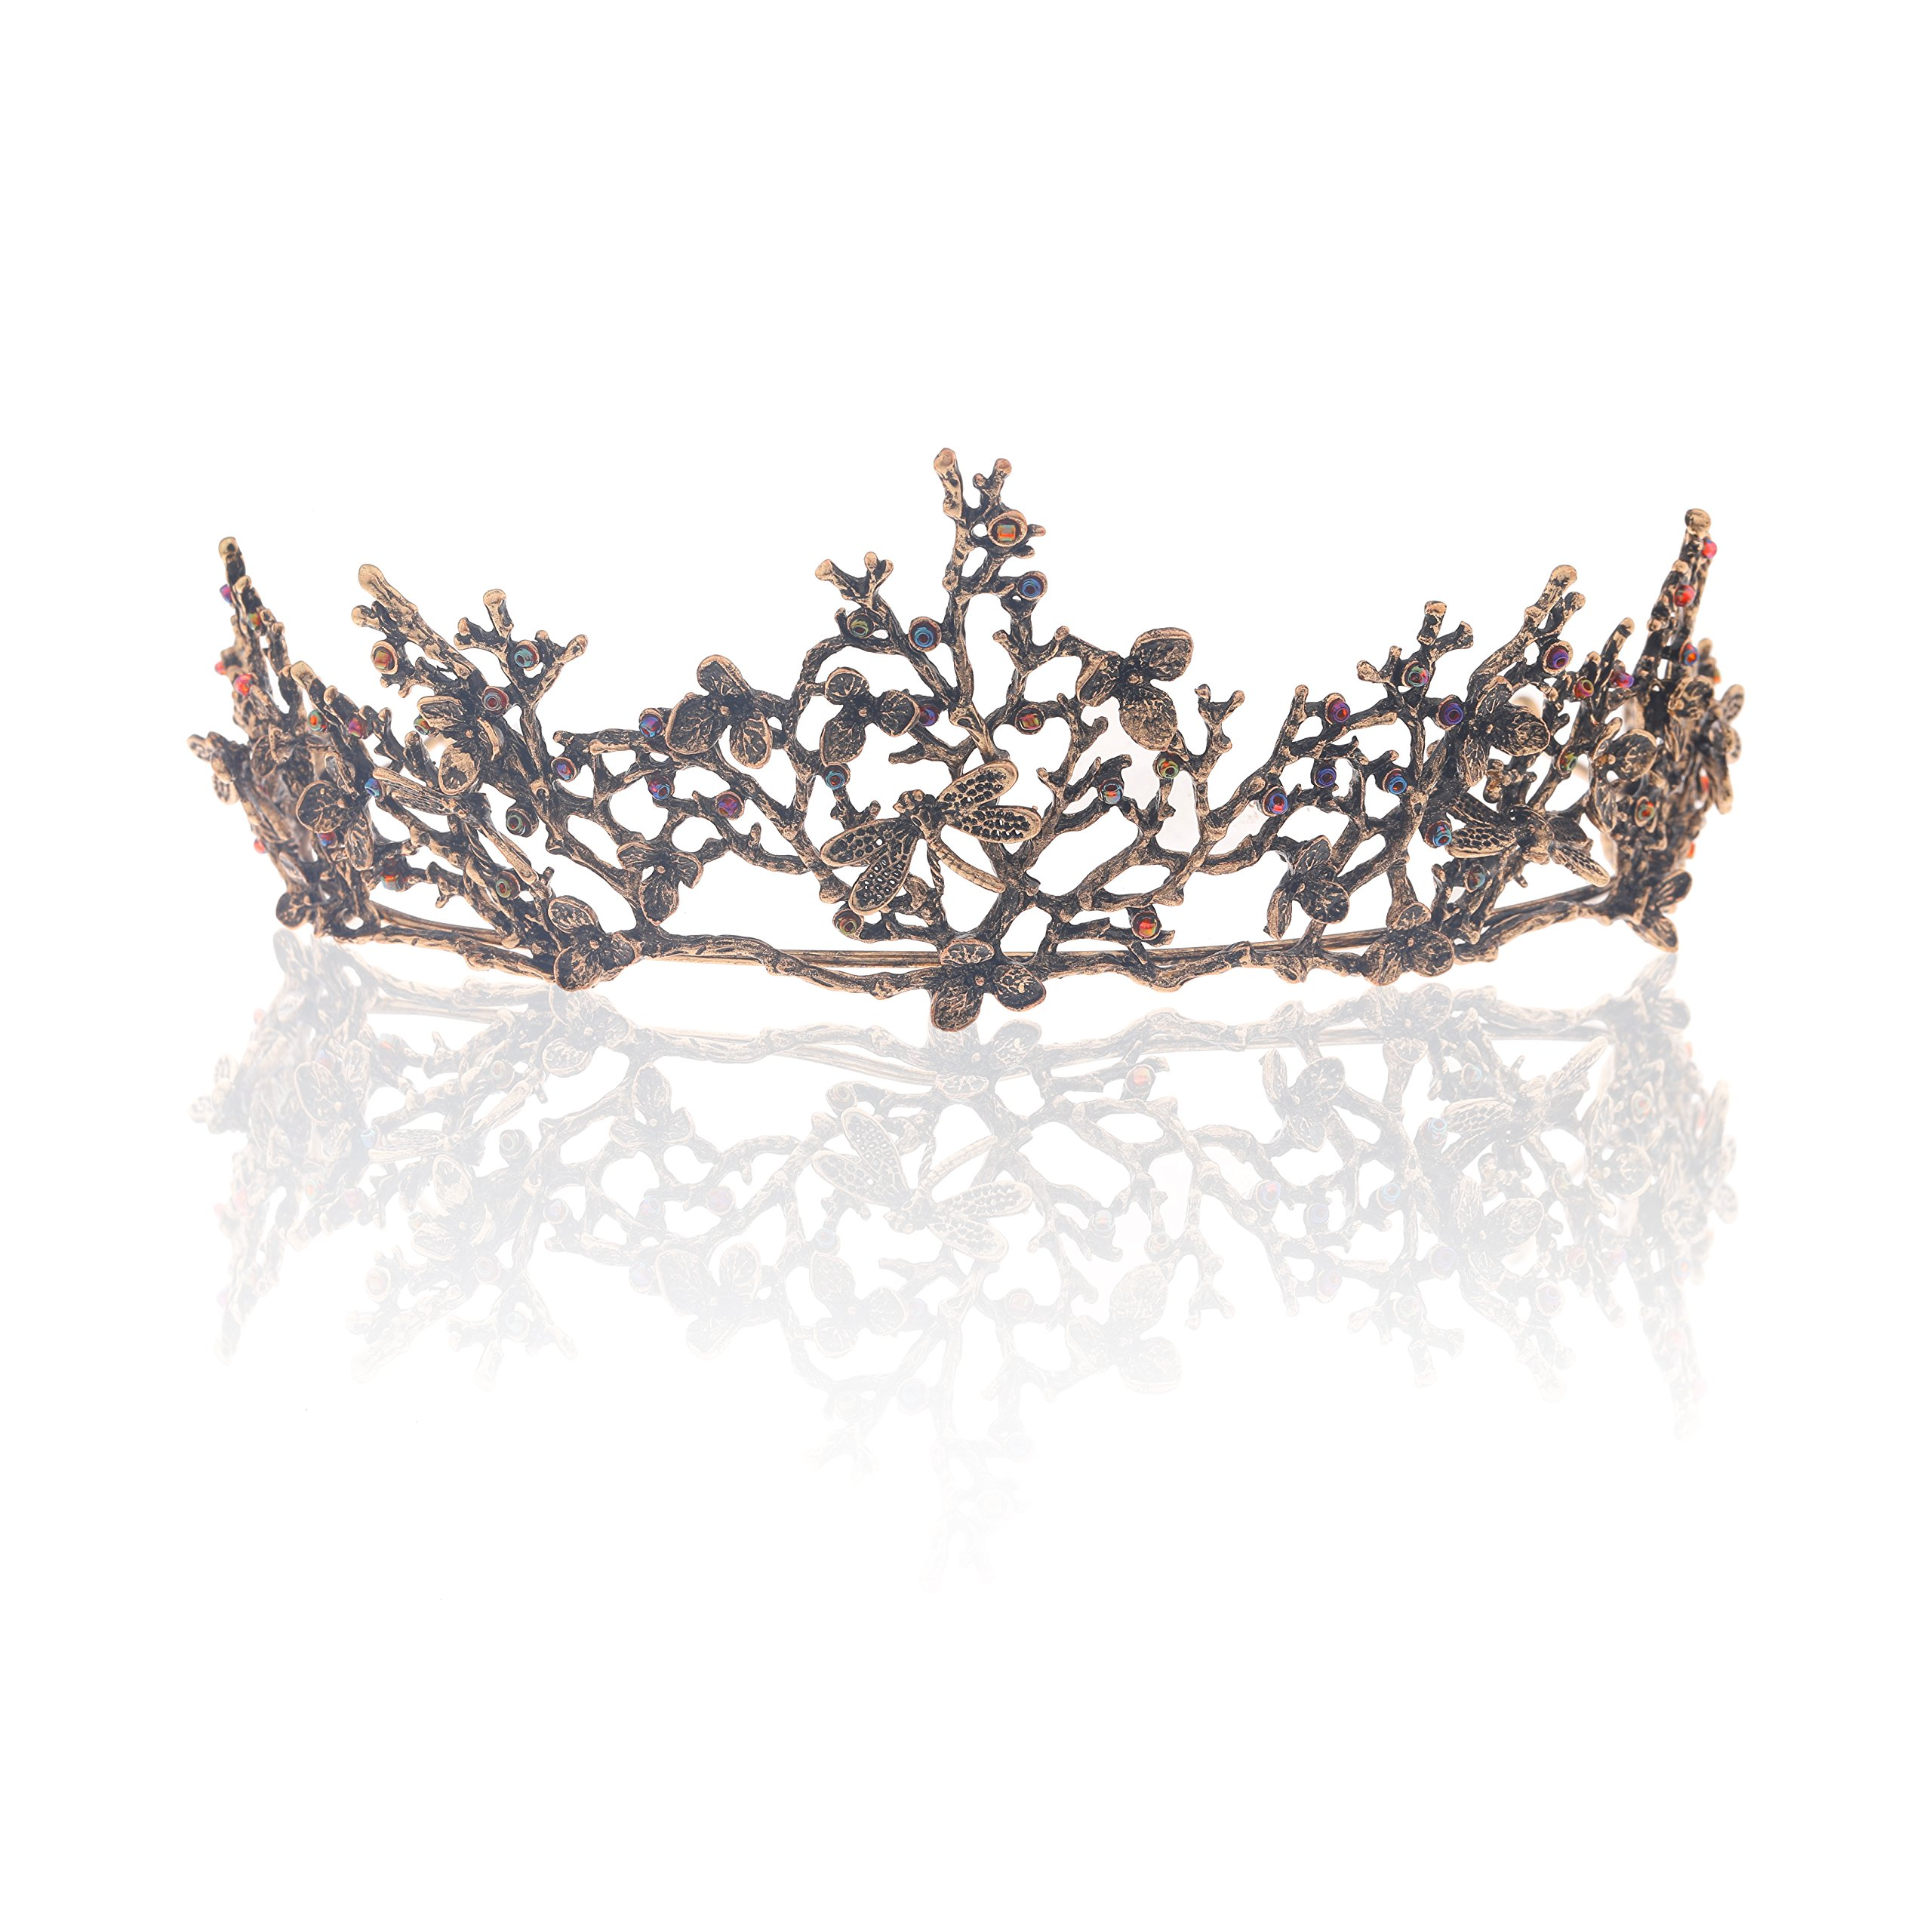 Edary Bridal Wedding Queen Crowns and Tiaras Baroque Black Flower Hair Accessories for Women by Edary (Image #4)